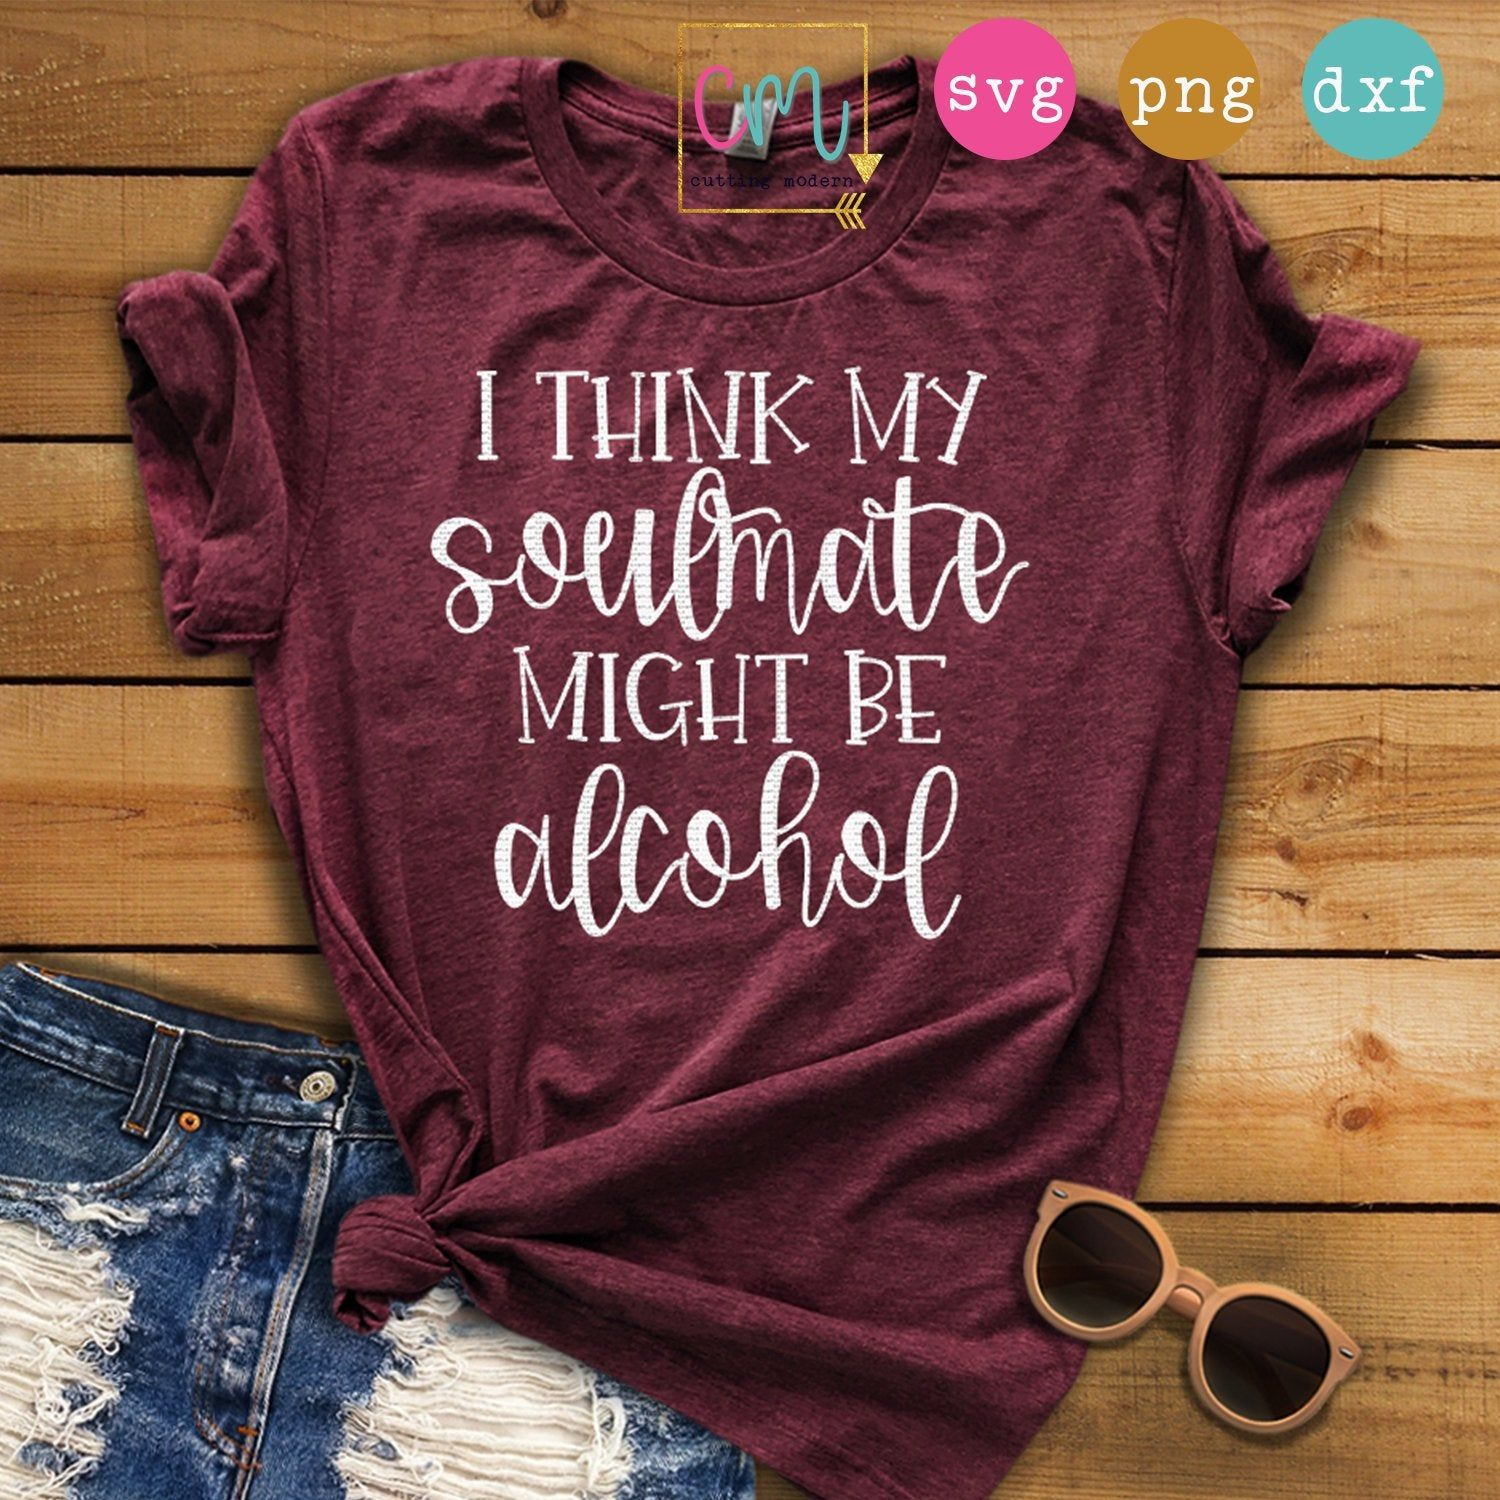 I Think My Soulmate Might Be Alcohol | Tee SVG, PNG, DXF Silhouette Cameo and Cricut Files